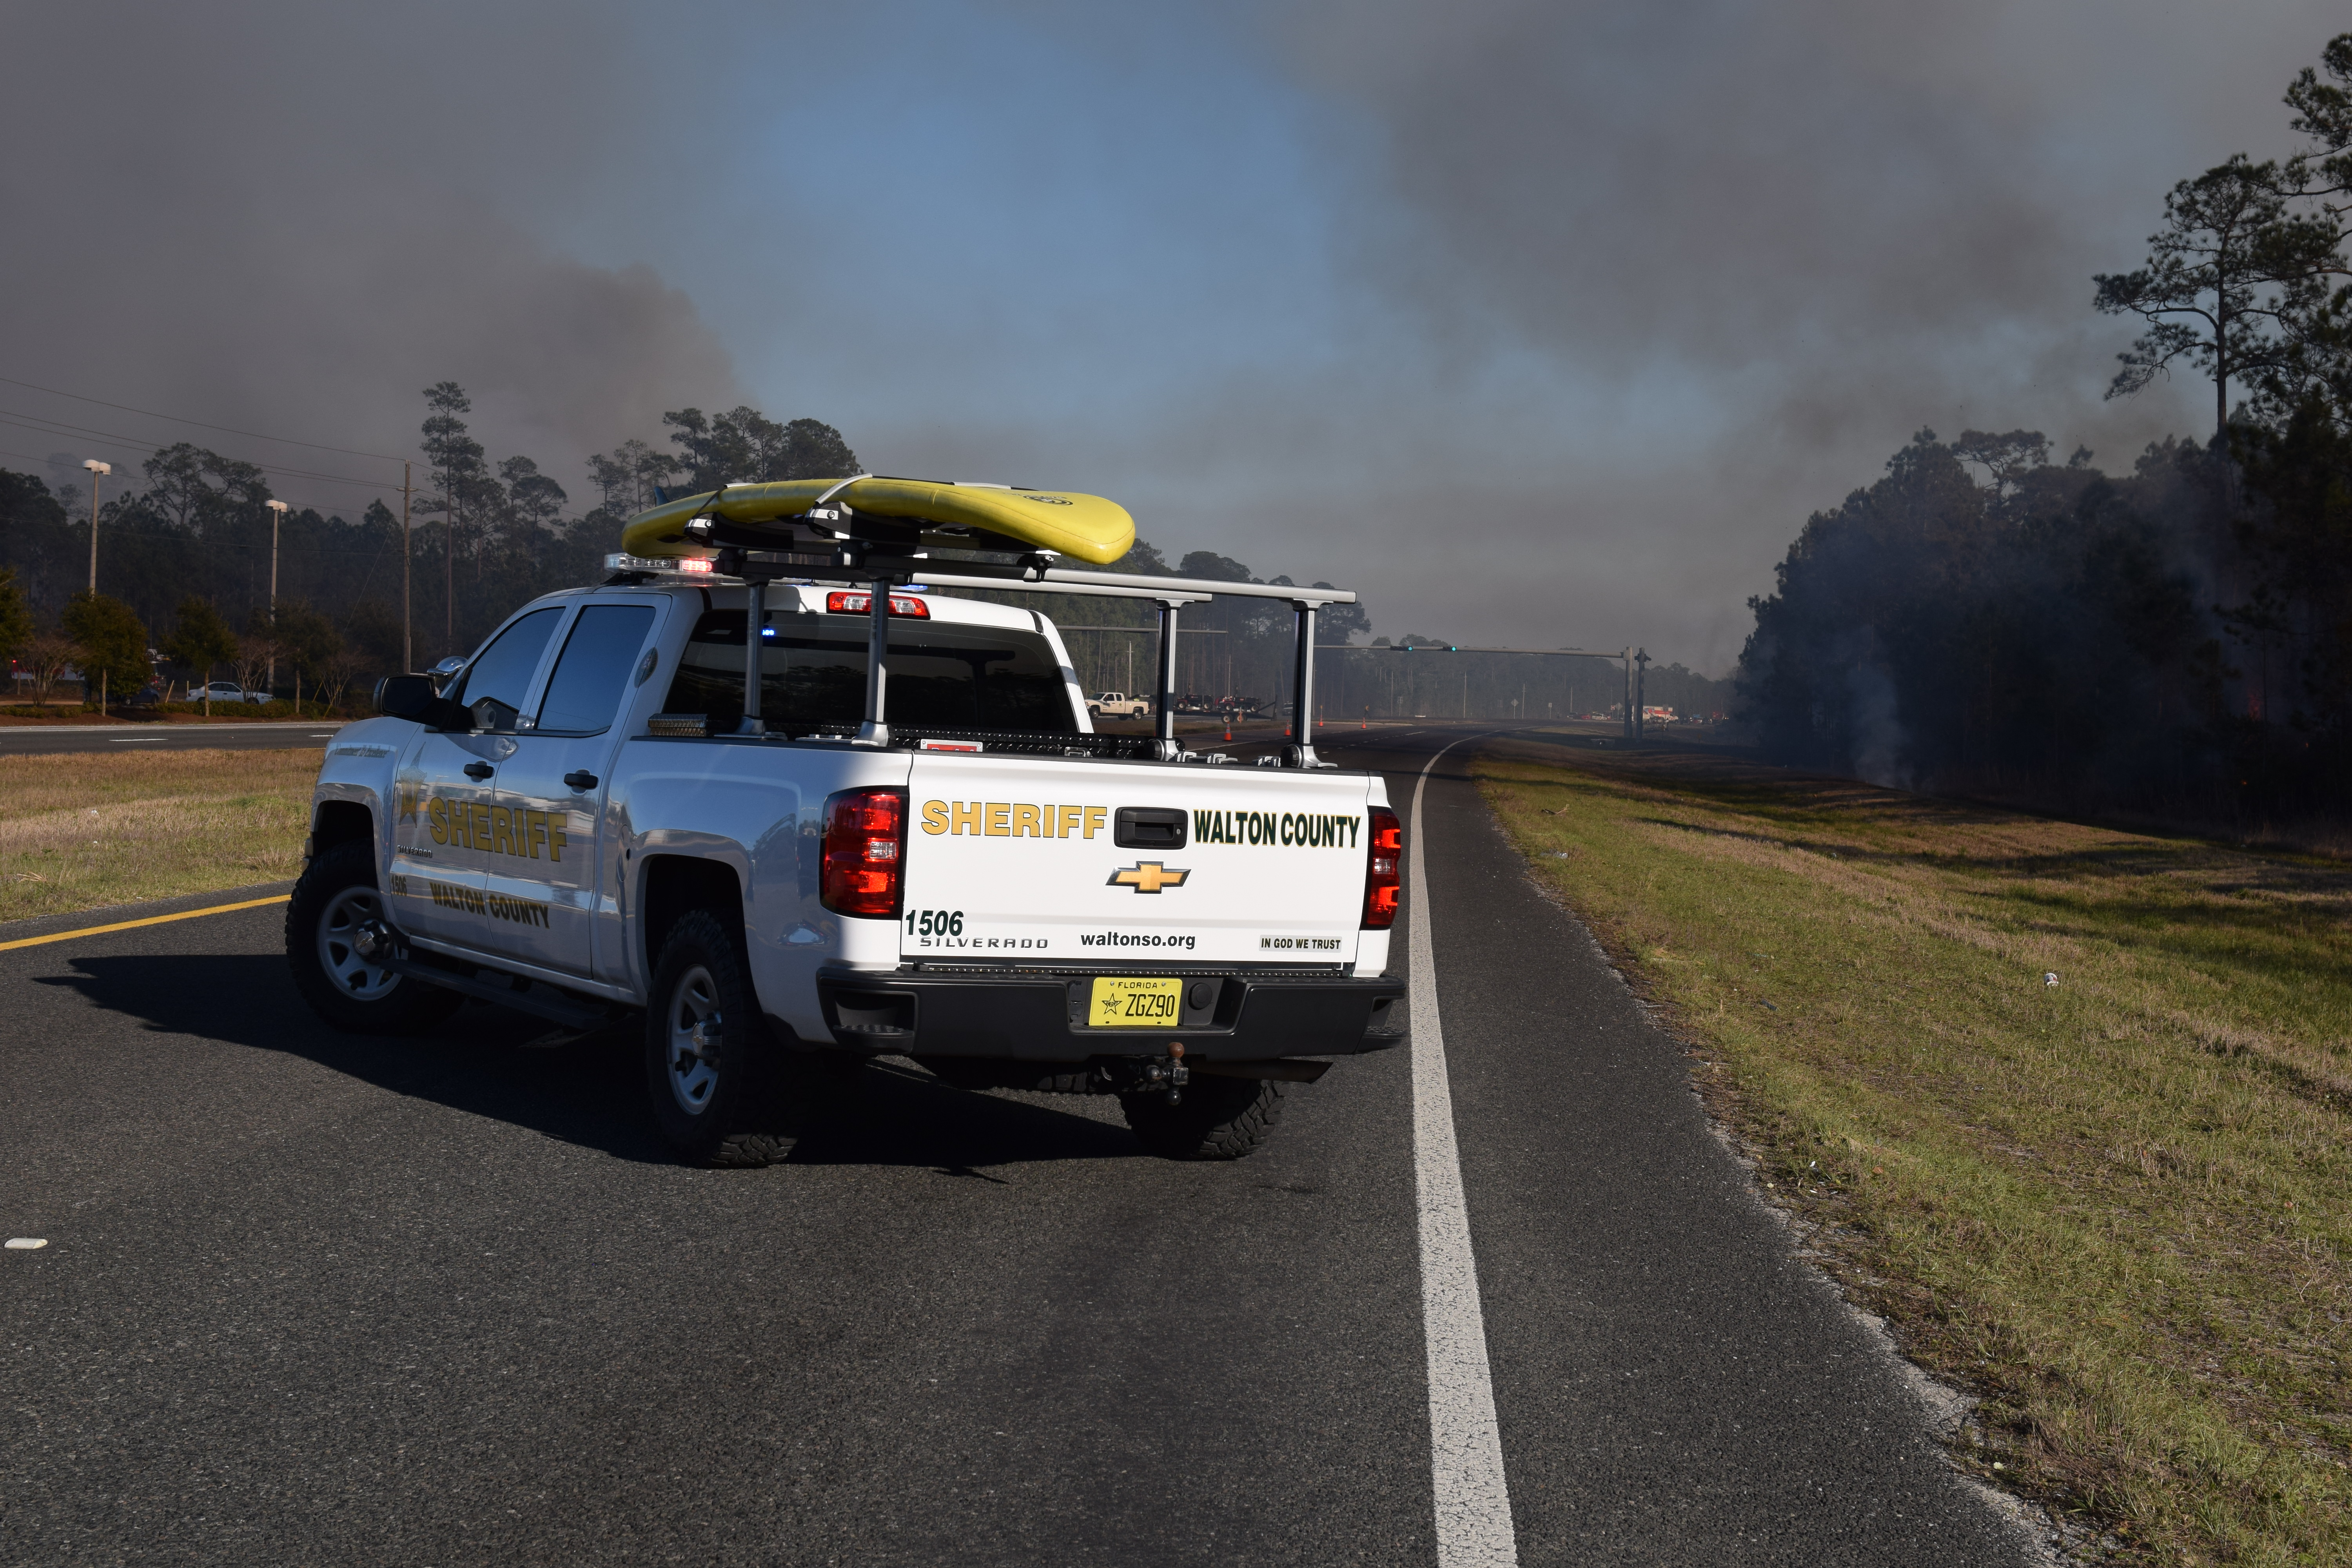 WCSO ASSISTING FLORIDA FOREST SERVICE WITH FIRE IN SANTA ROSA BEACH